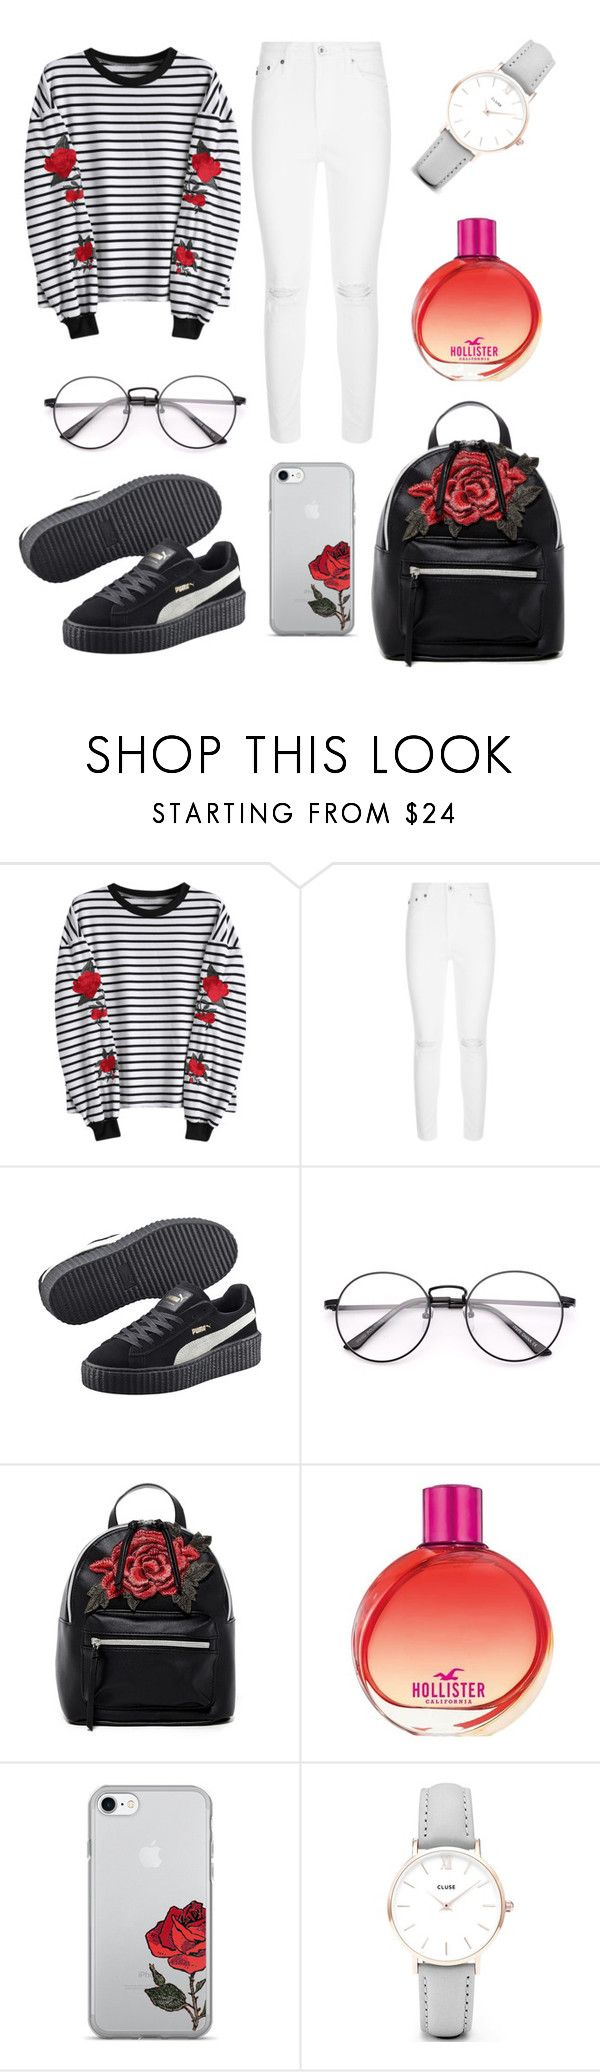 """""""Just Roses"""" by burovaa-ria ❤ liked on Polyvore featuring AG Adriano Goldschmied, Puma, T-shirt & Jeans, Hollister Co. and CLUSE"""